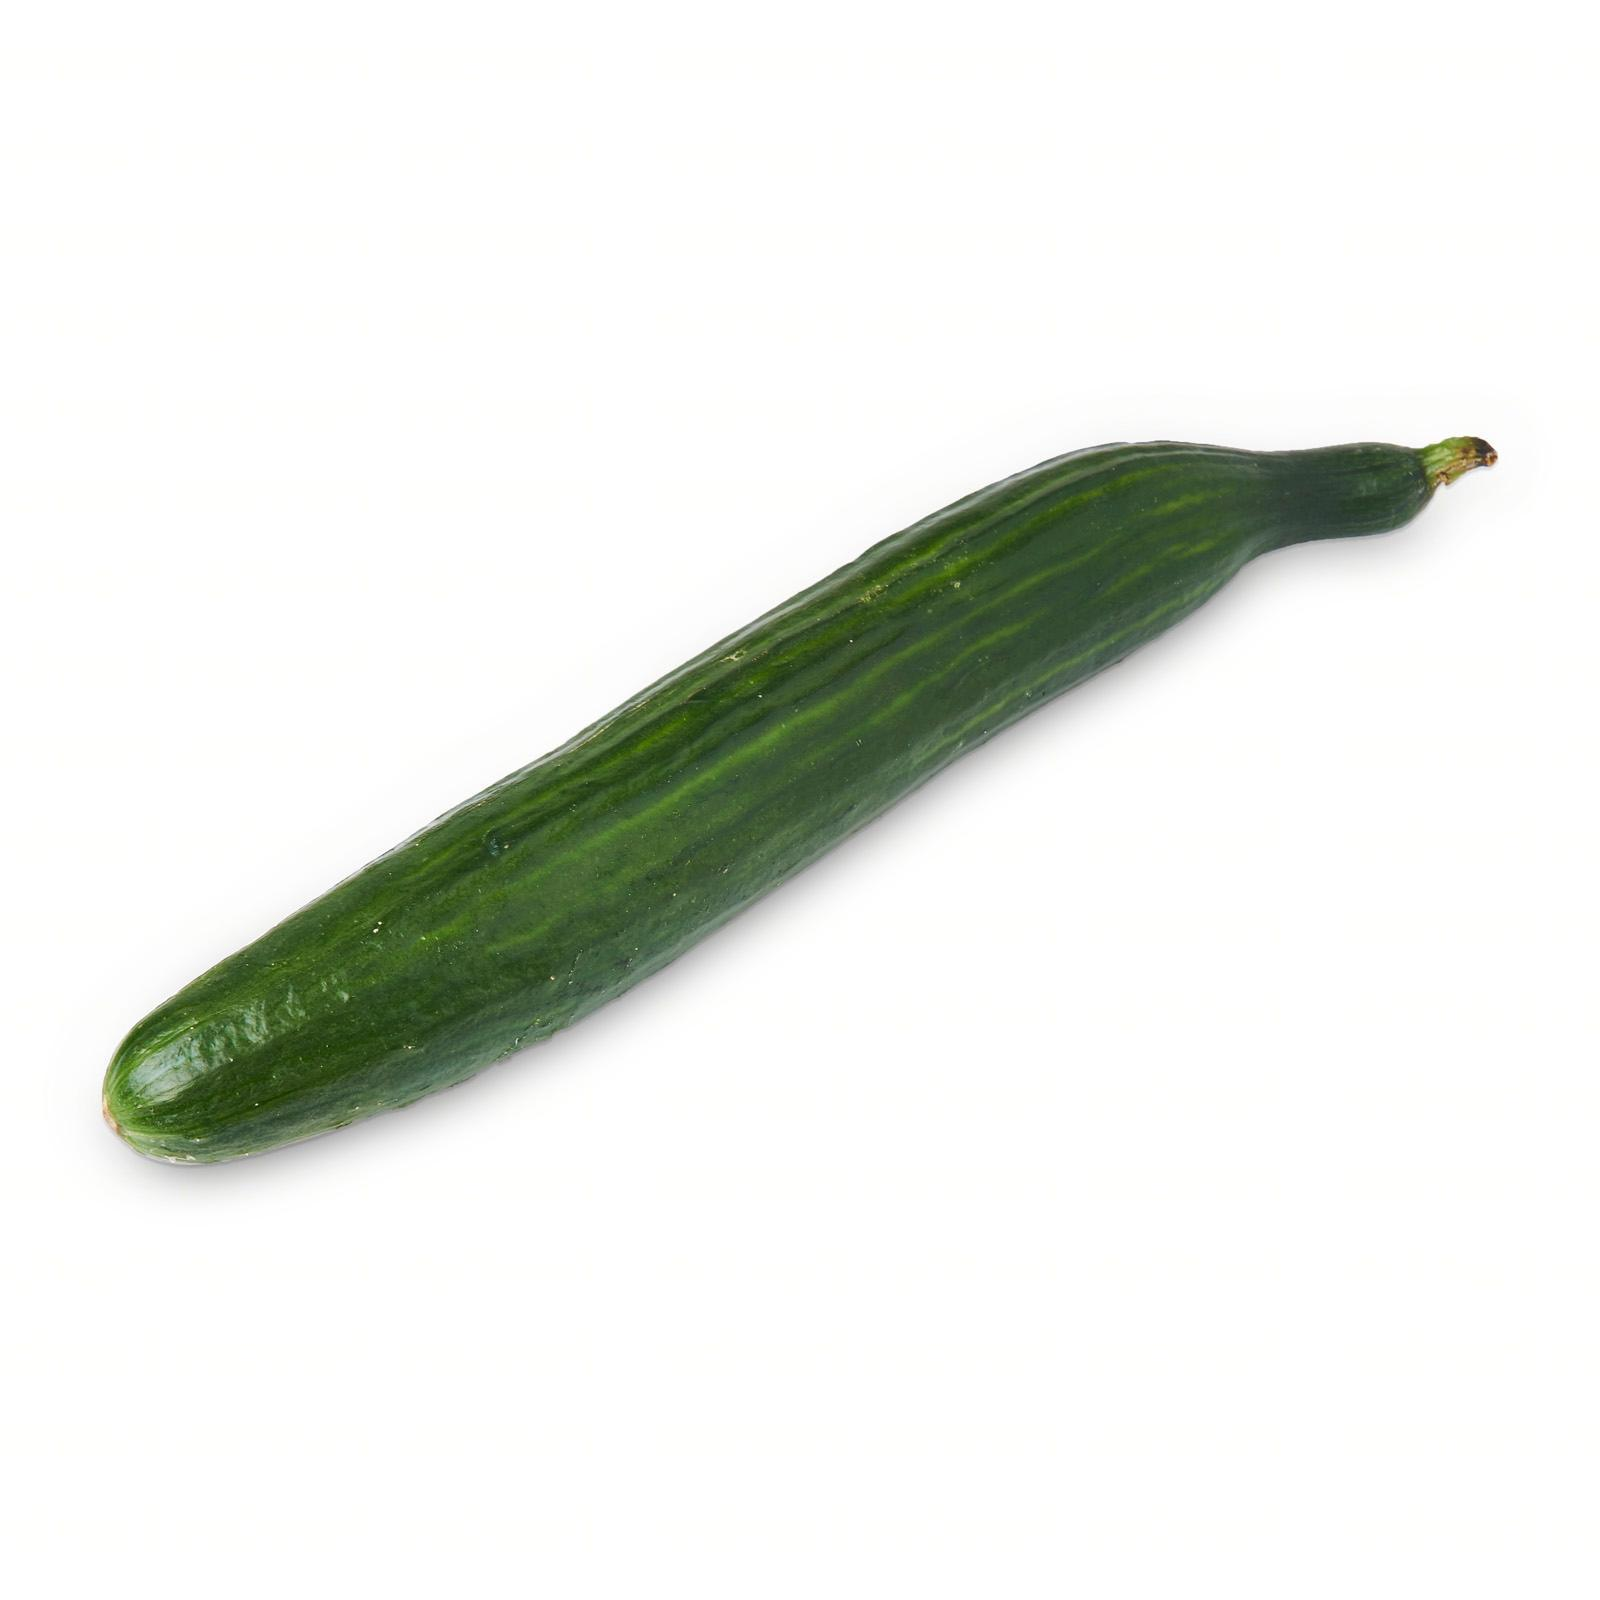 Cucumber Spain Telegraphic